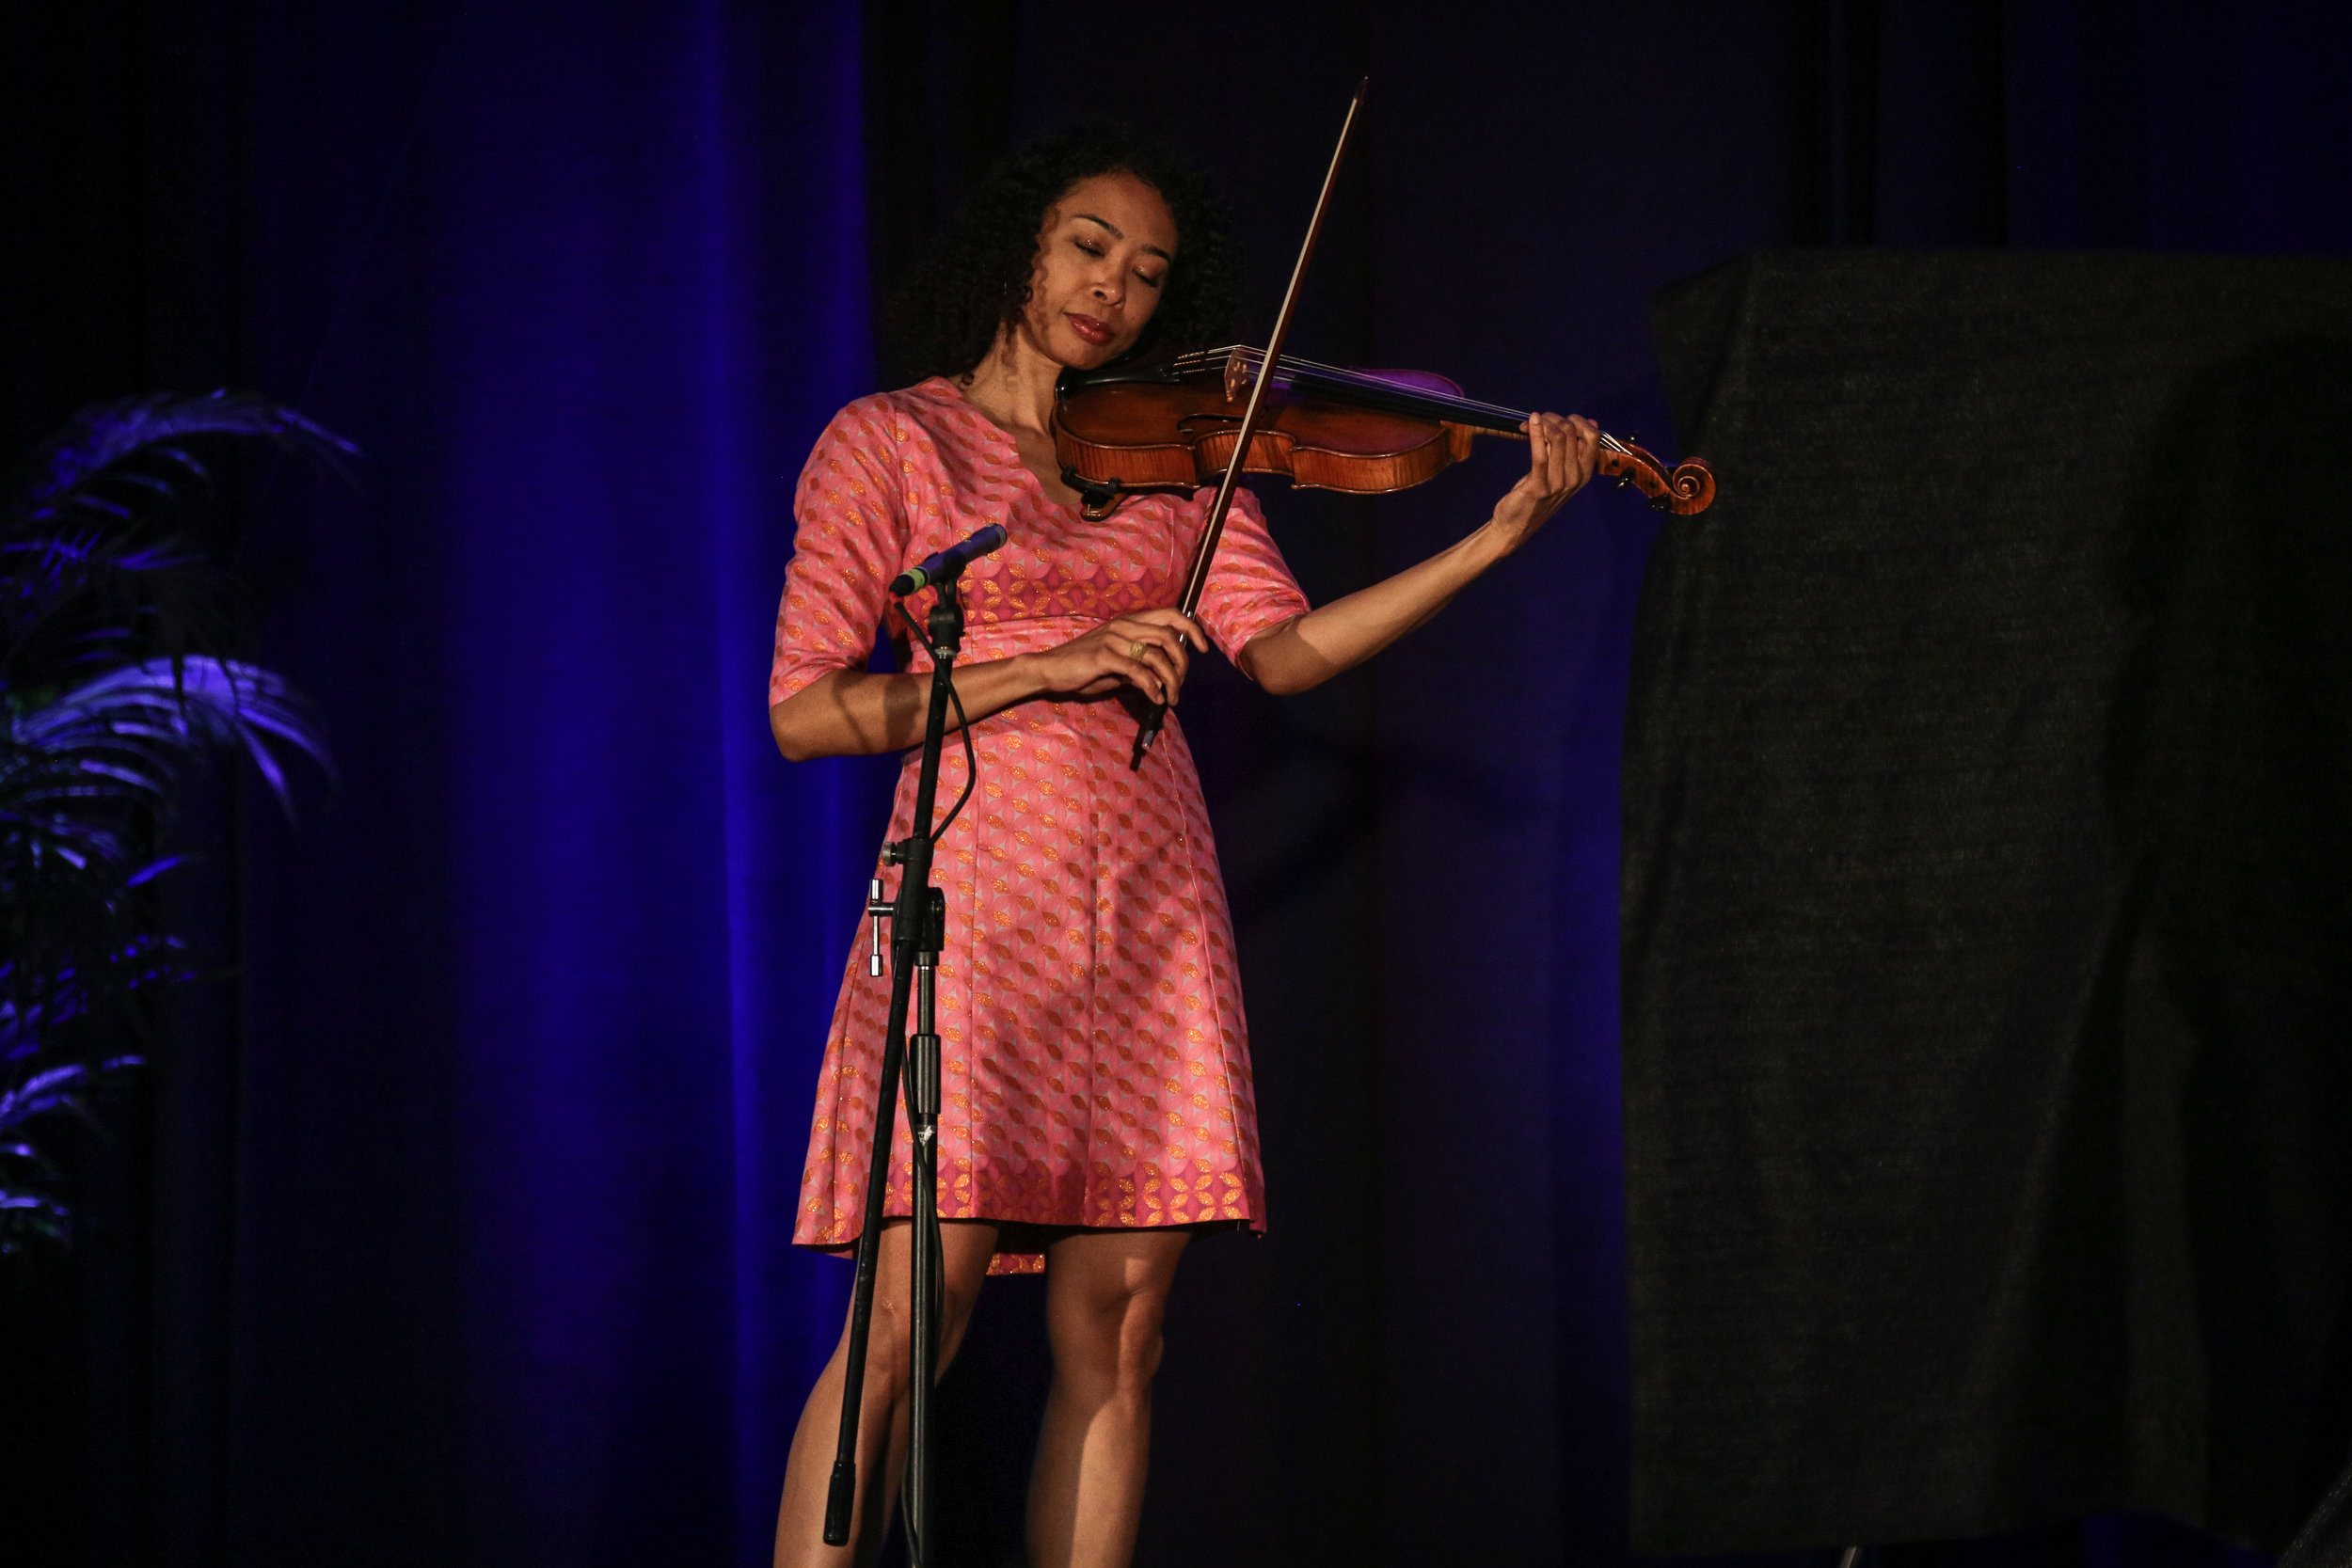 Orchestral soloist Nokuthula Ngwenyama performs her piece dedicated to Sen. John McCain